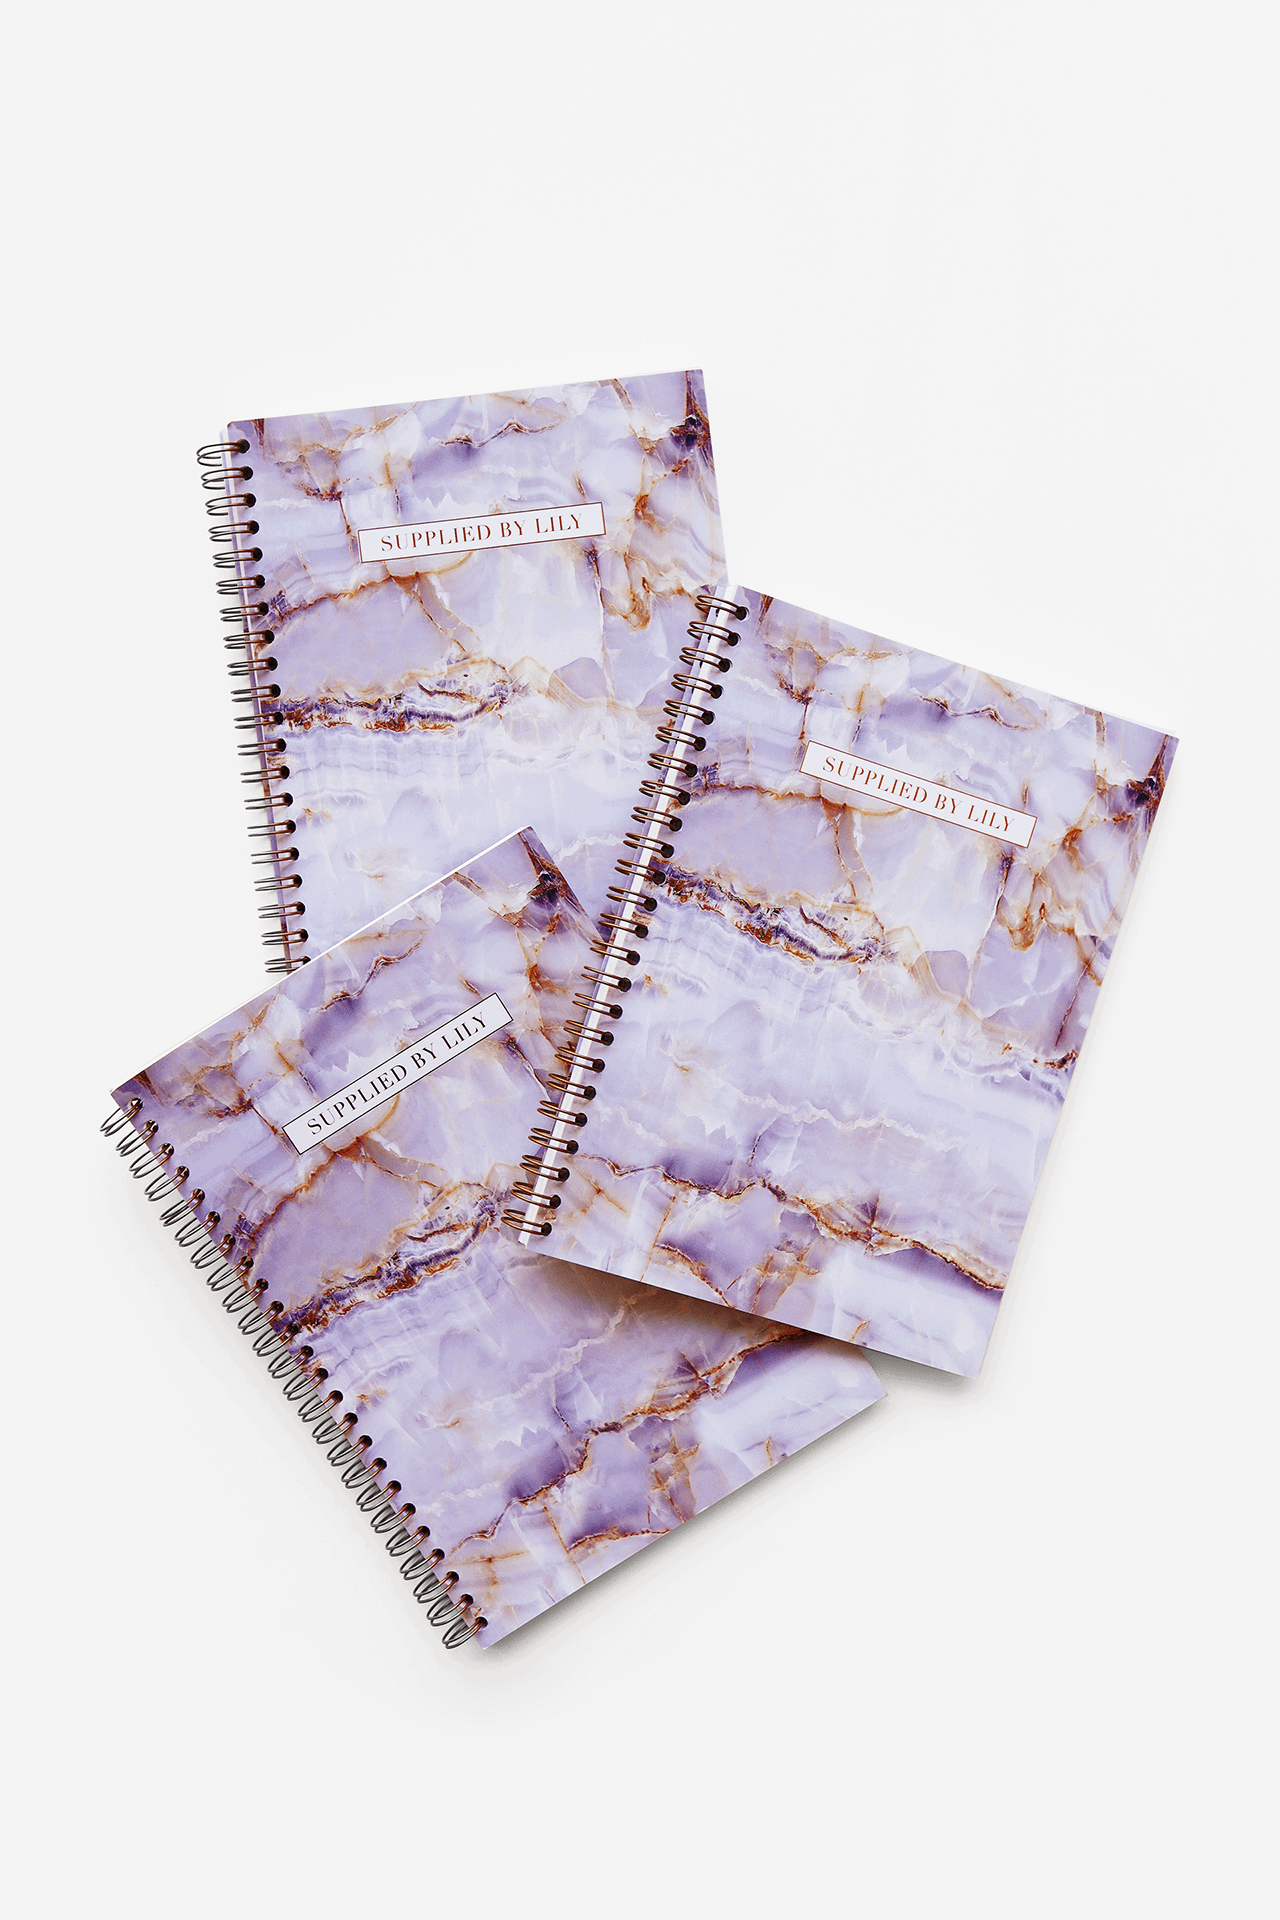 Supplied by Lily A5 Spiral Notebook in Luxurious Amethyst